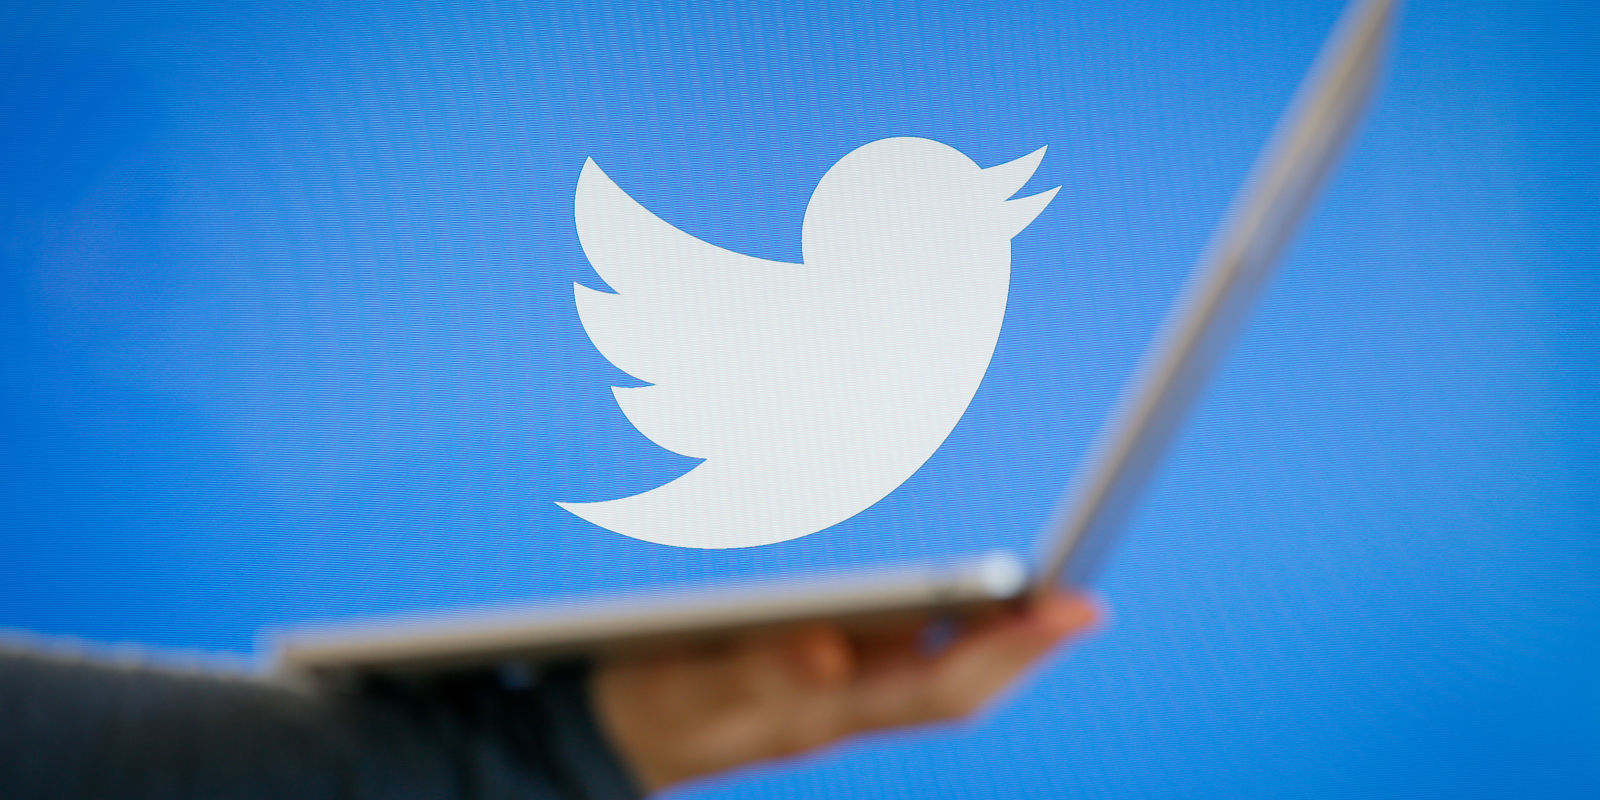 You Can Unlock 280 Character Tweets Right Now